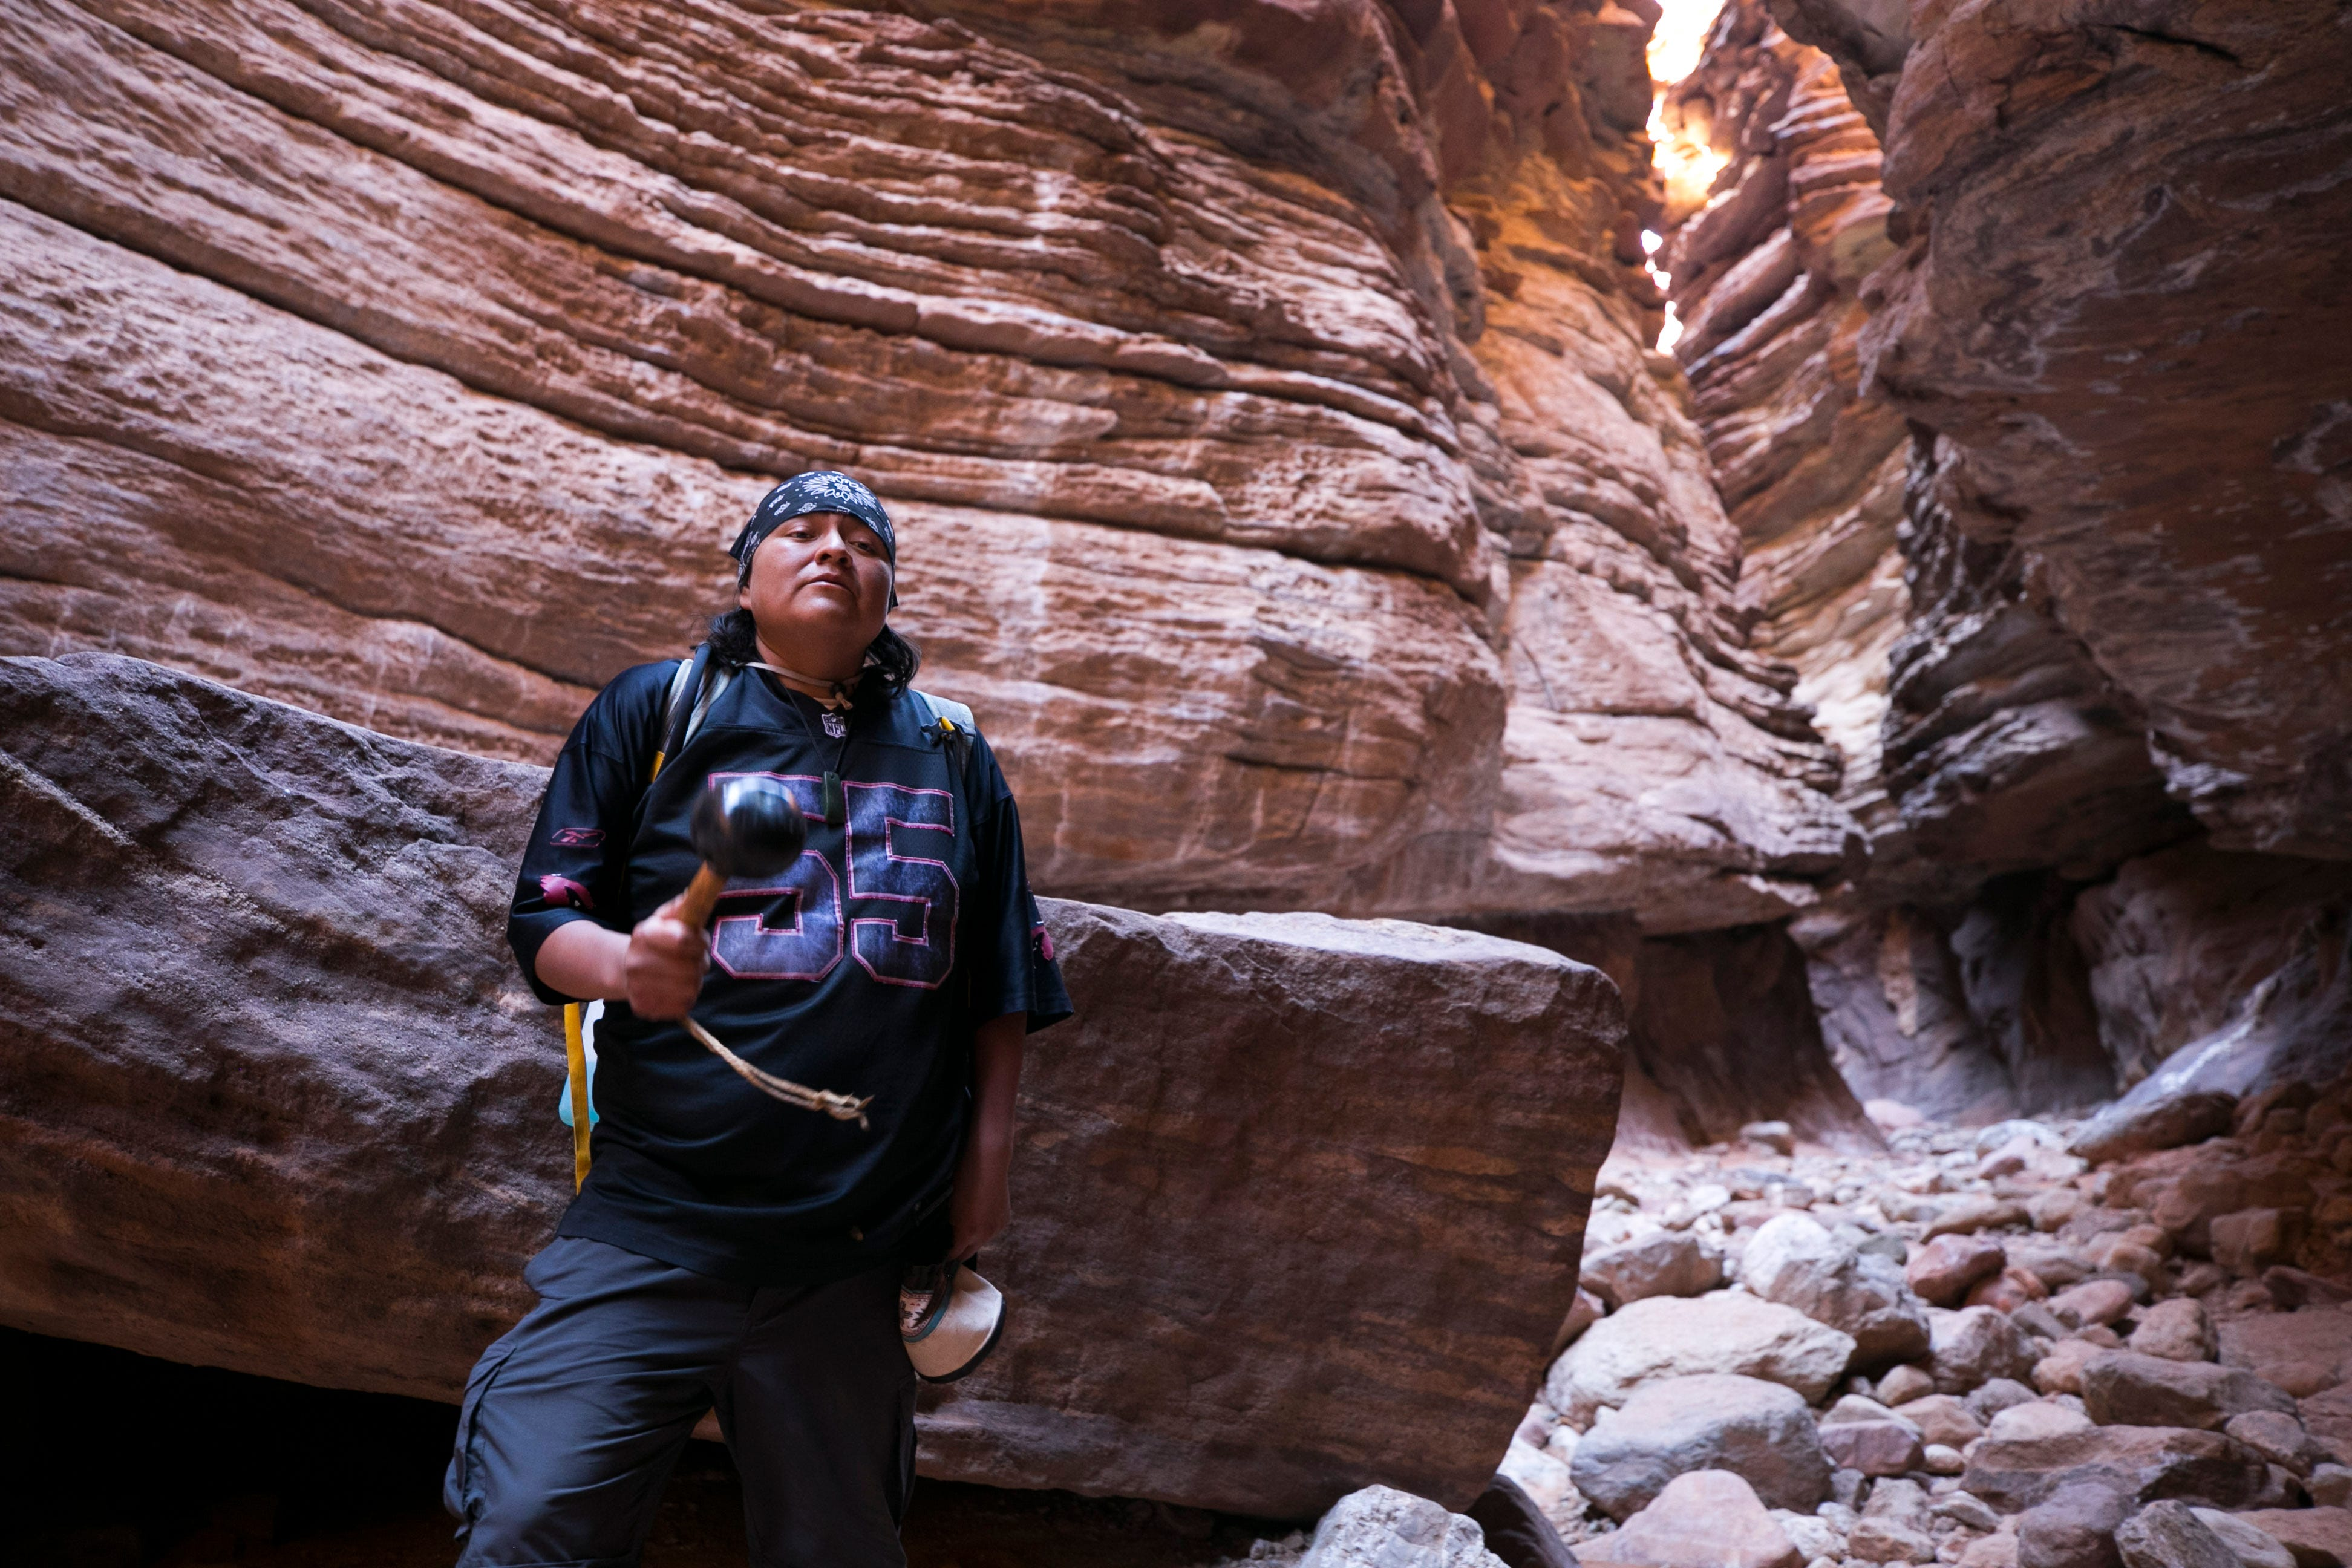 Hualapai tribal member Daniel Powskey sings a native song in Blacktail Canyon, a side canyon drainage of the Colorado River in Grand Canyon National Park. The Hualapai Indians' traditional homeland stretches for over a hundred miles along the Grand Canyon.